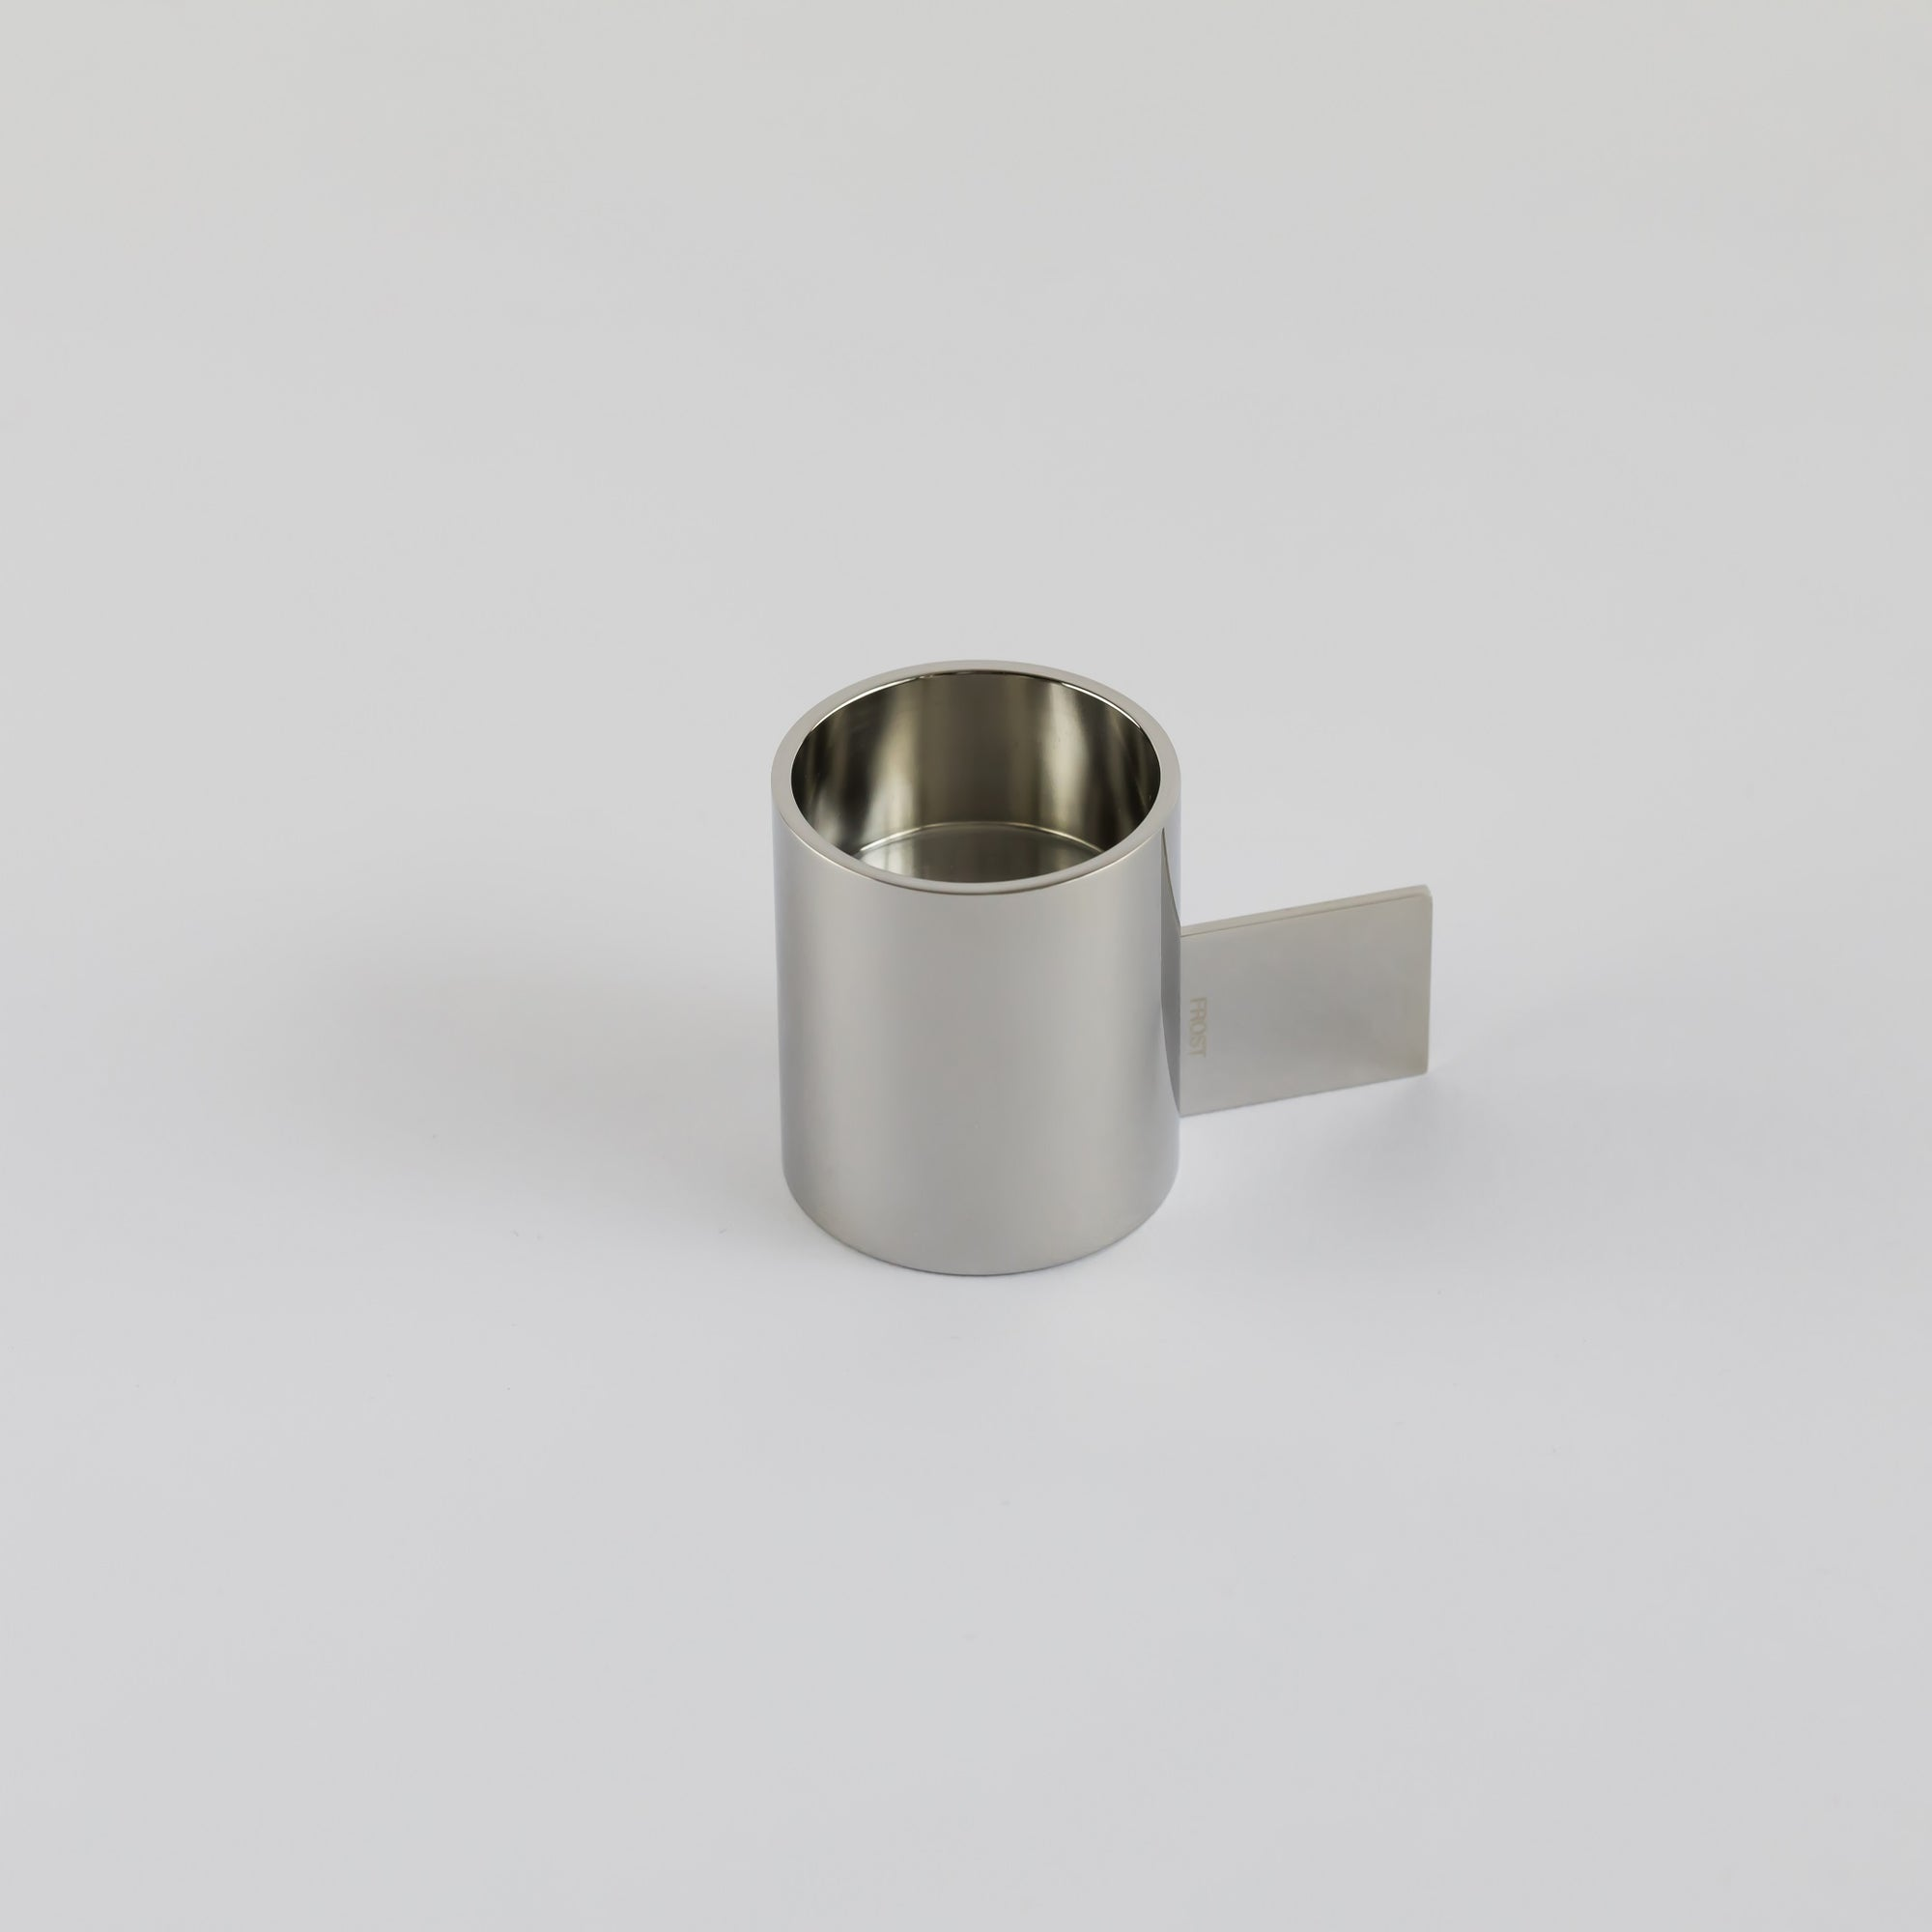 Tealight Candlestick- Polished